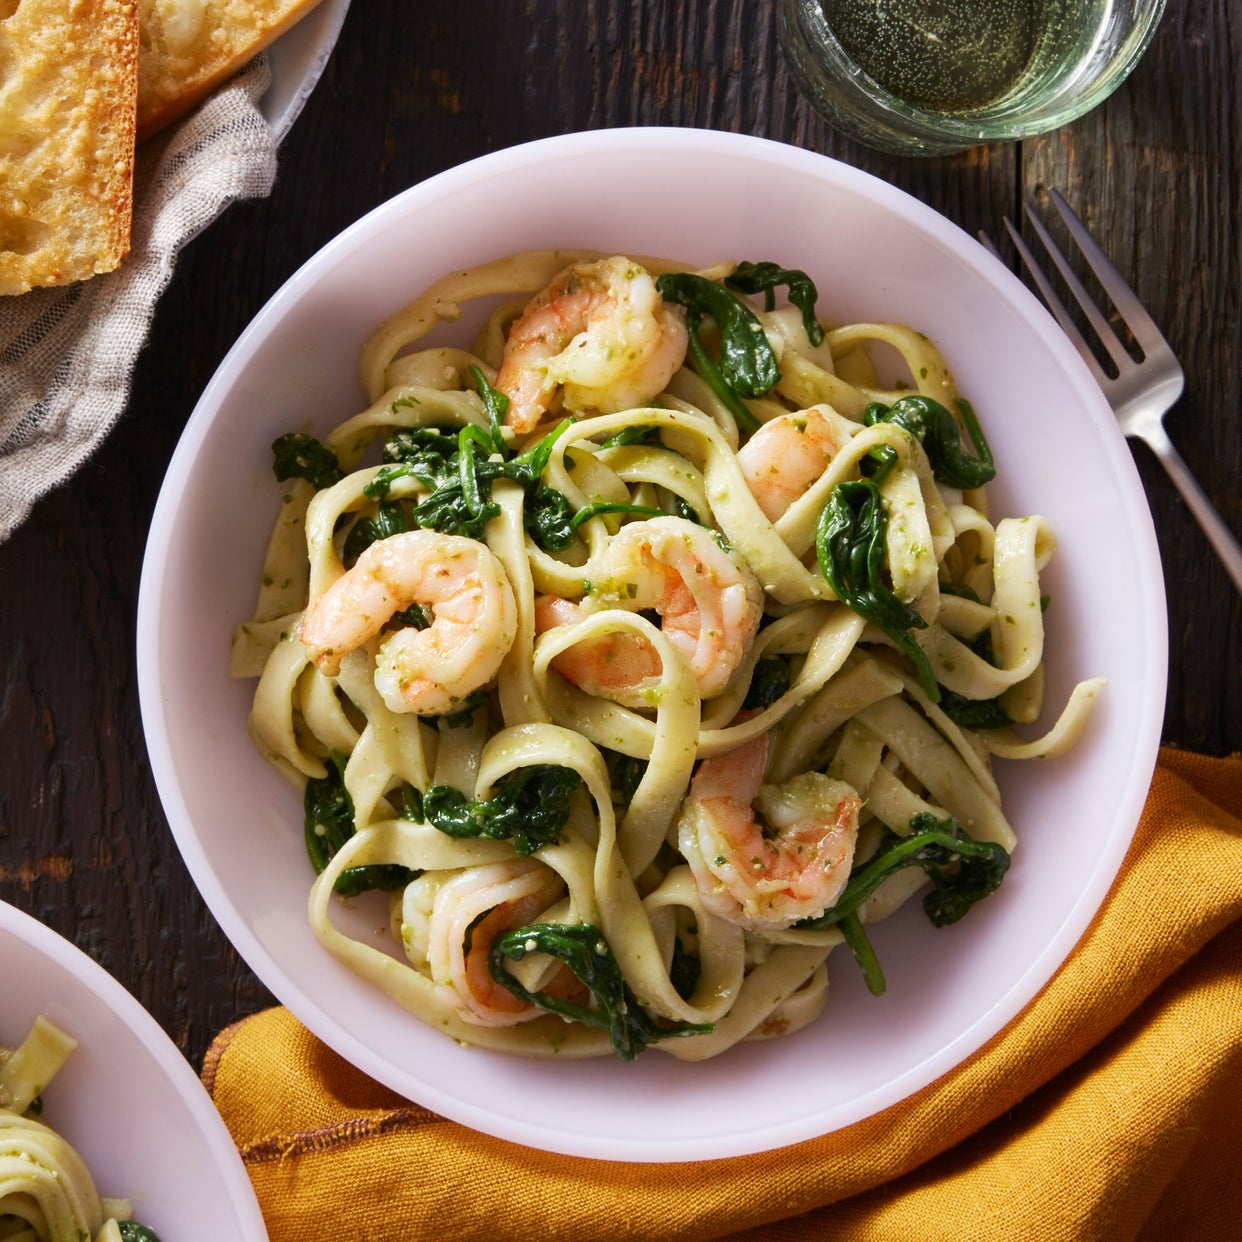 Shrimp & Pesto Fettuccine with Cheesy Garlic Bread